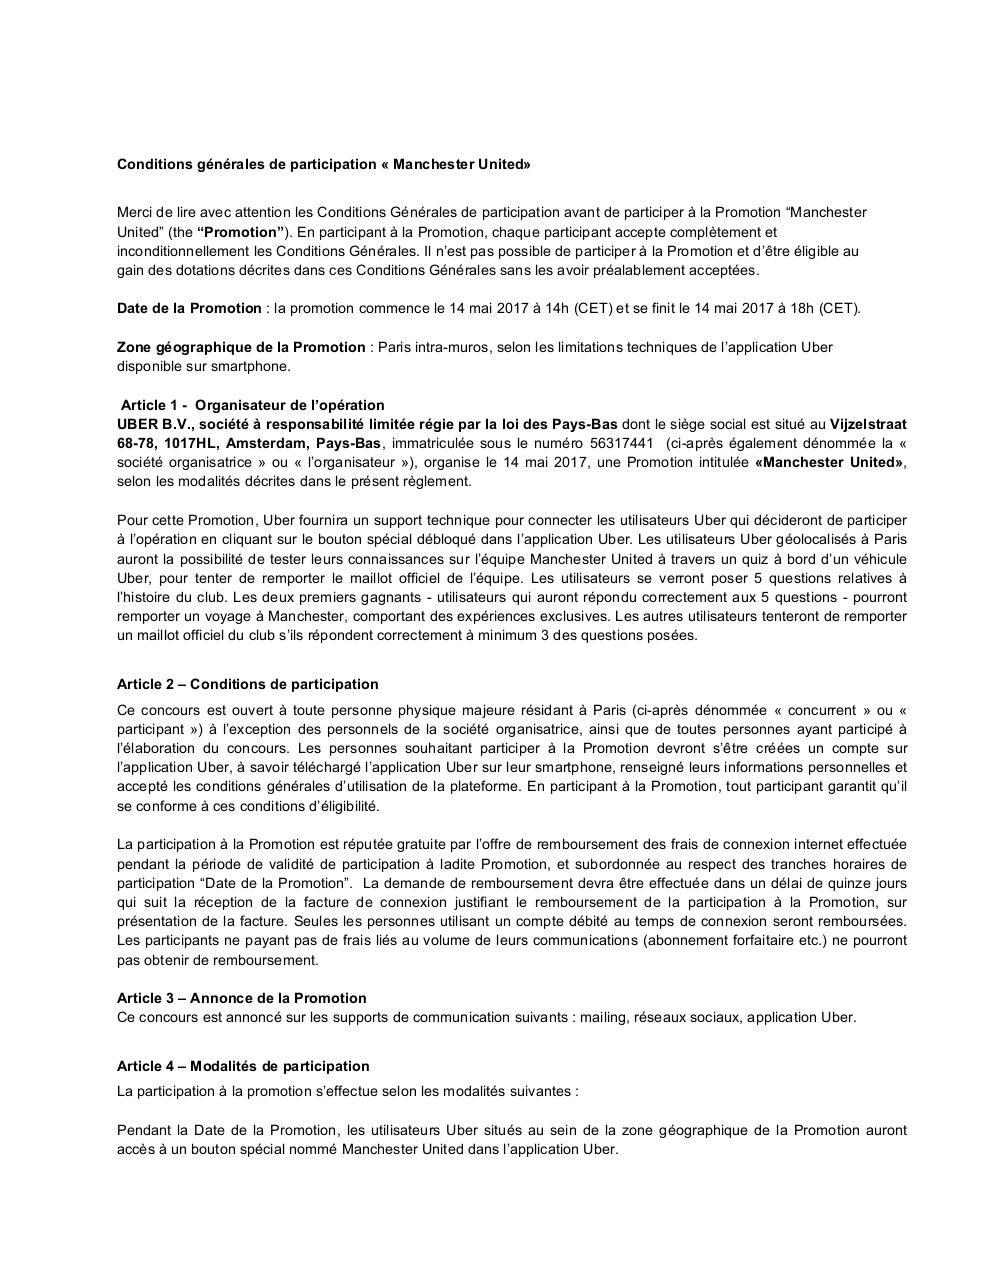 Conditions générales - Manchester United - Paris - V4.pdf - page 1/4